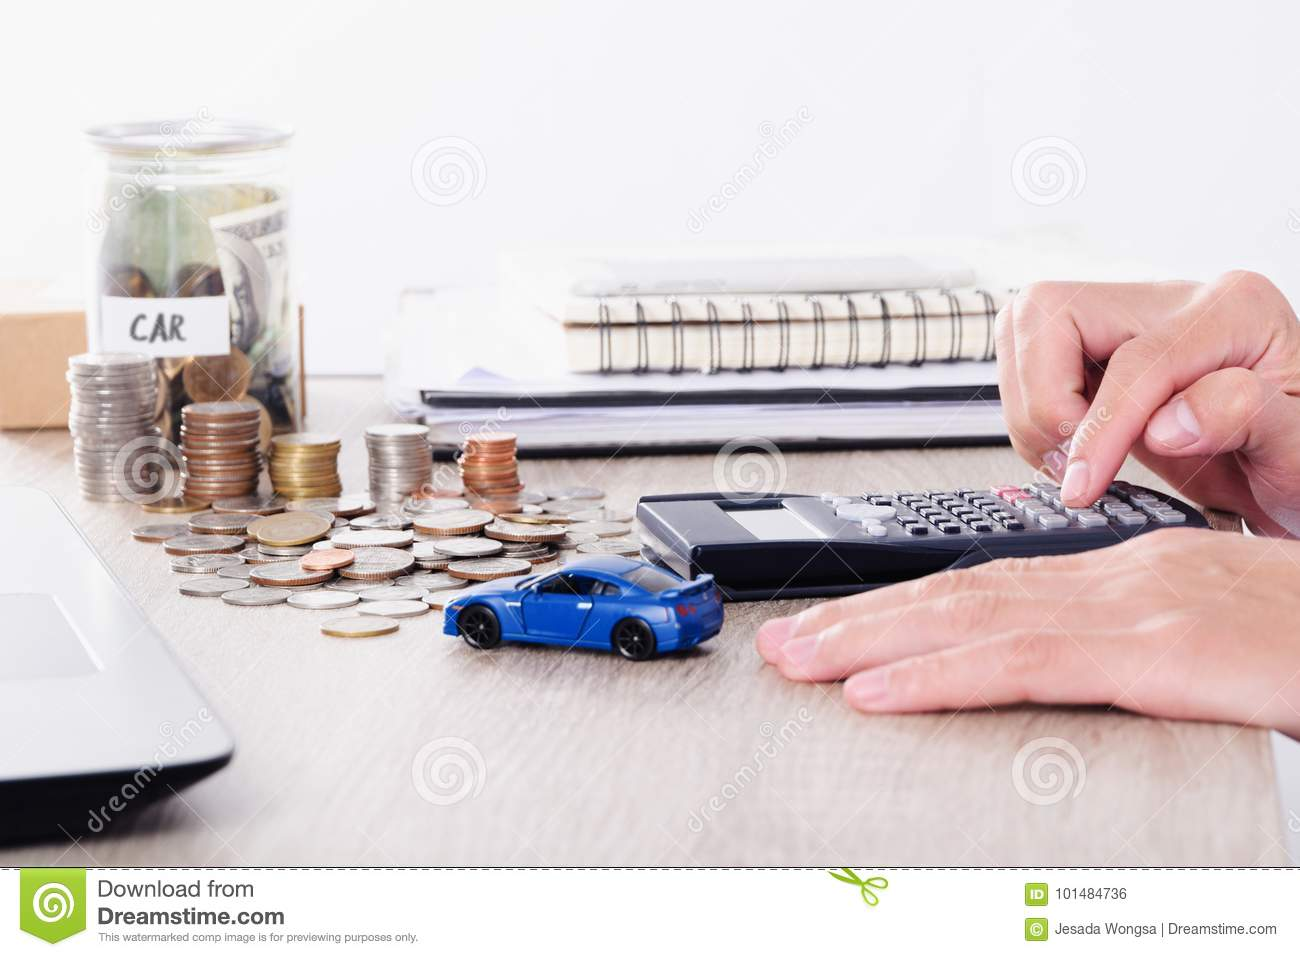 Man Using Calculator With Car Toy And Coin Stack For